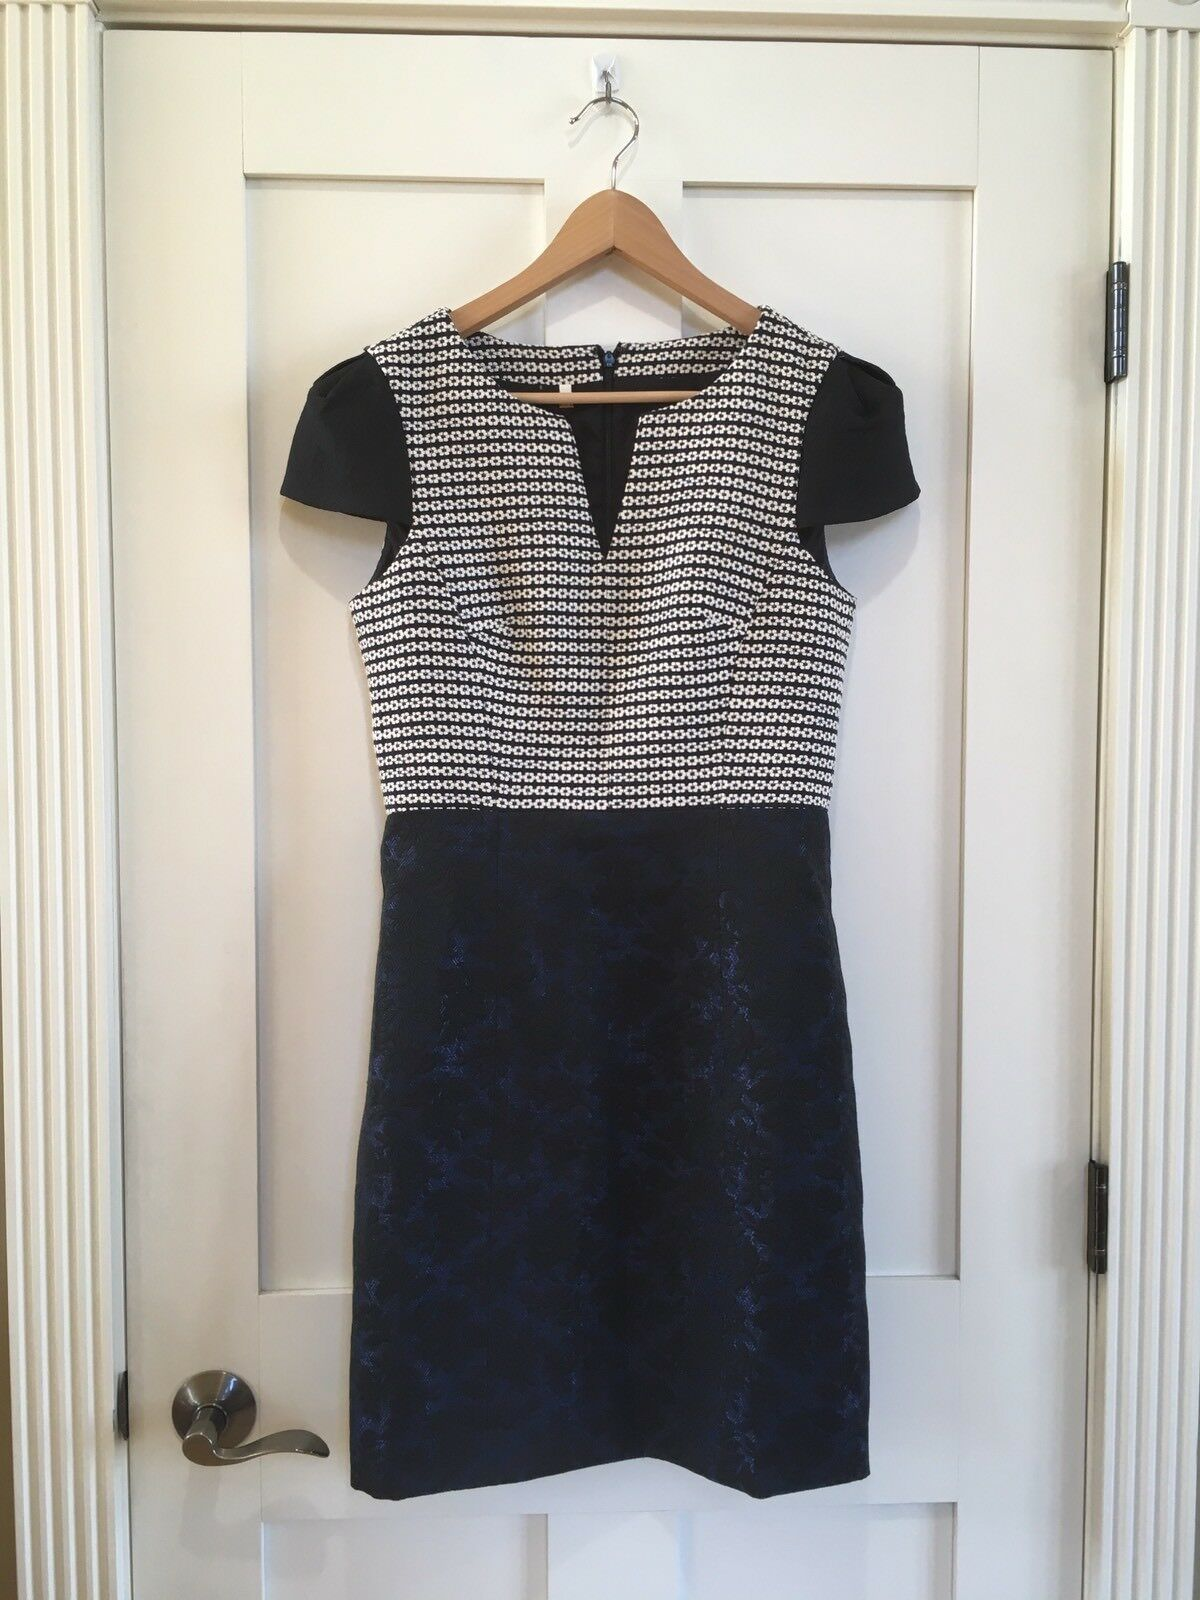 4. Collective Jacquard Floral Cap Sleeve A-line Dress Size 8 Navy